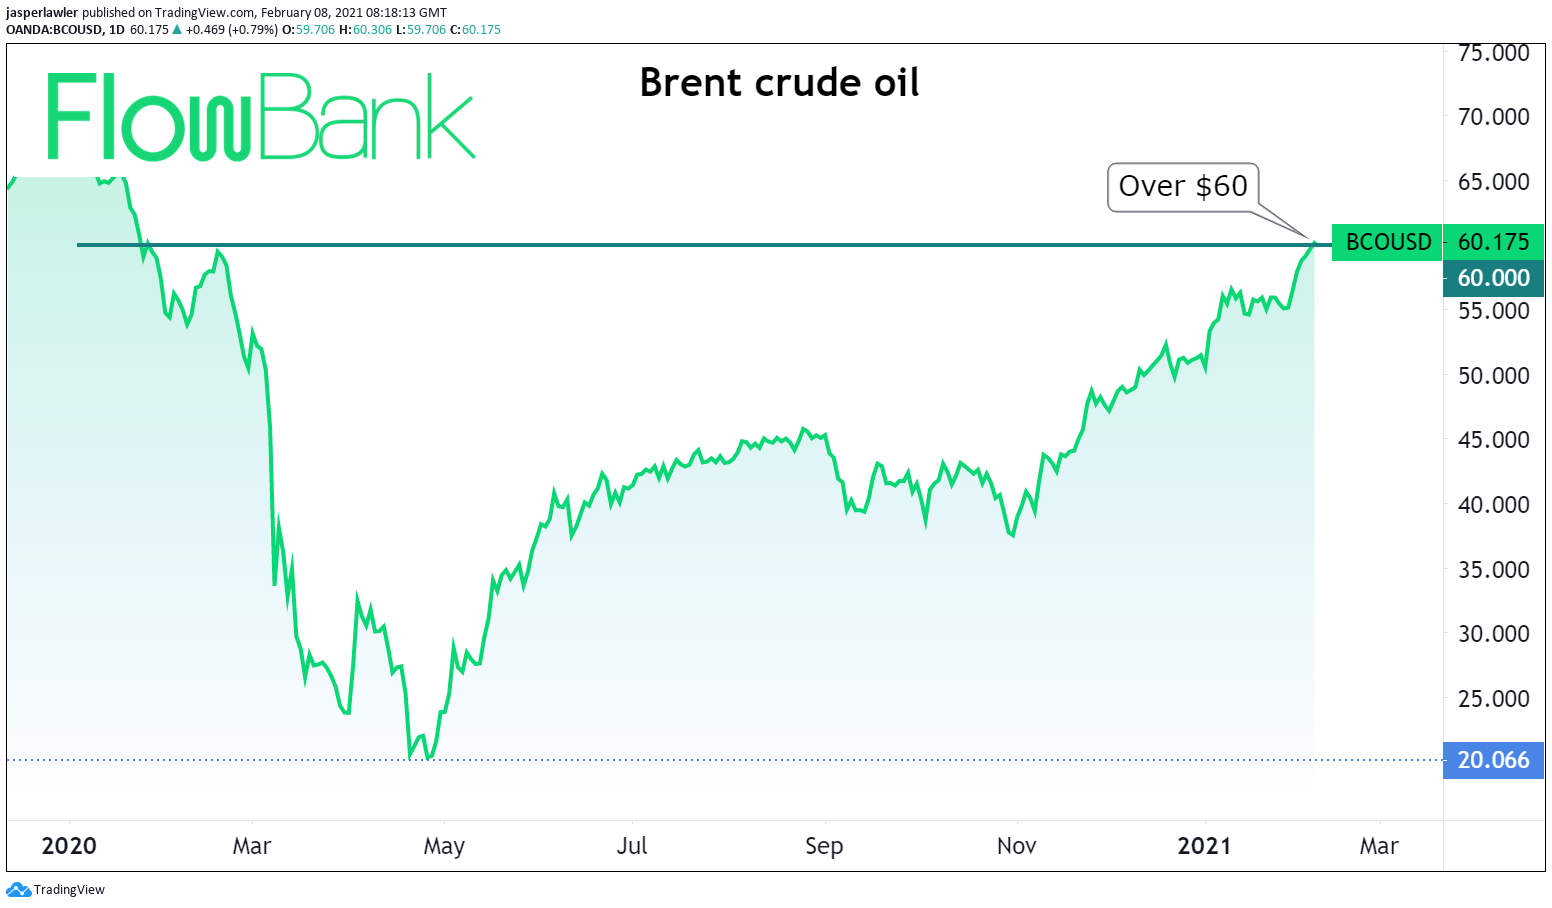 Brent crude oil hits $60 for first time in over a year